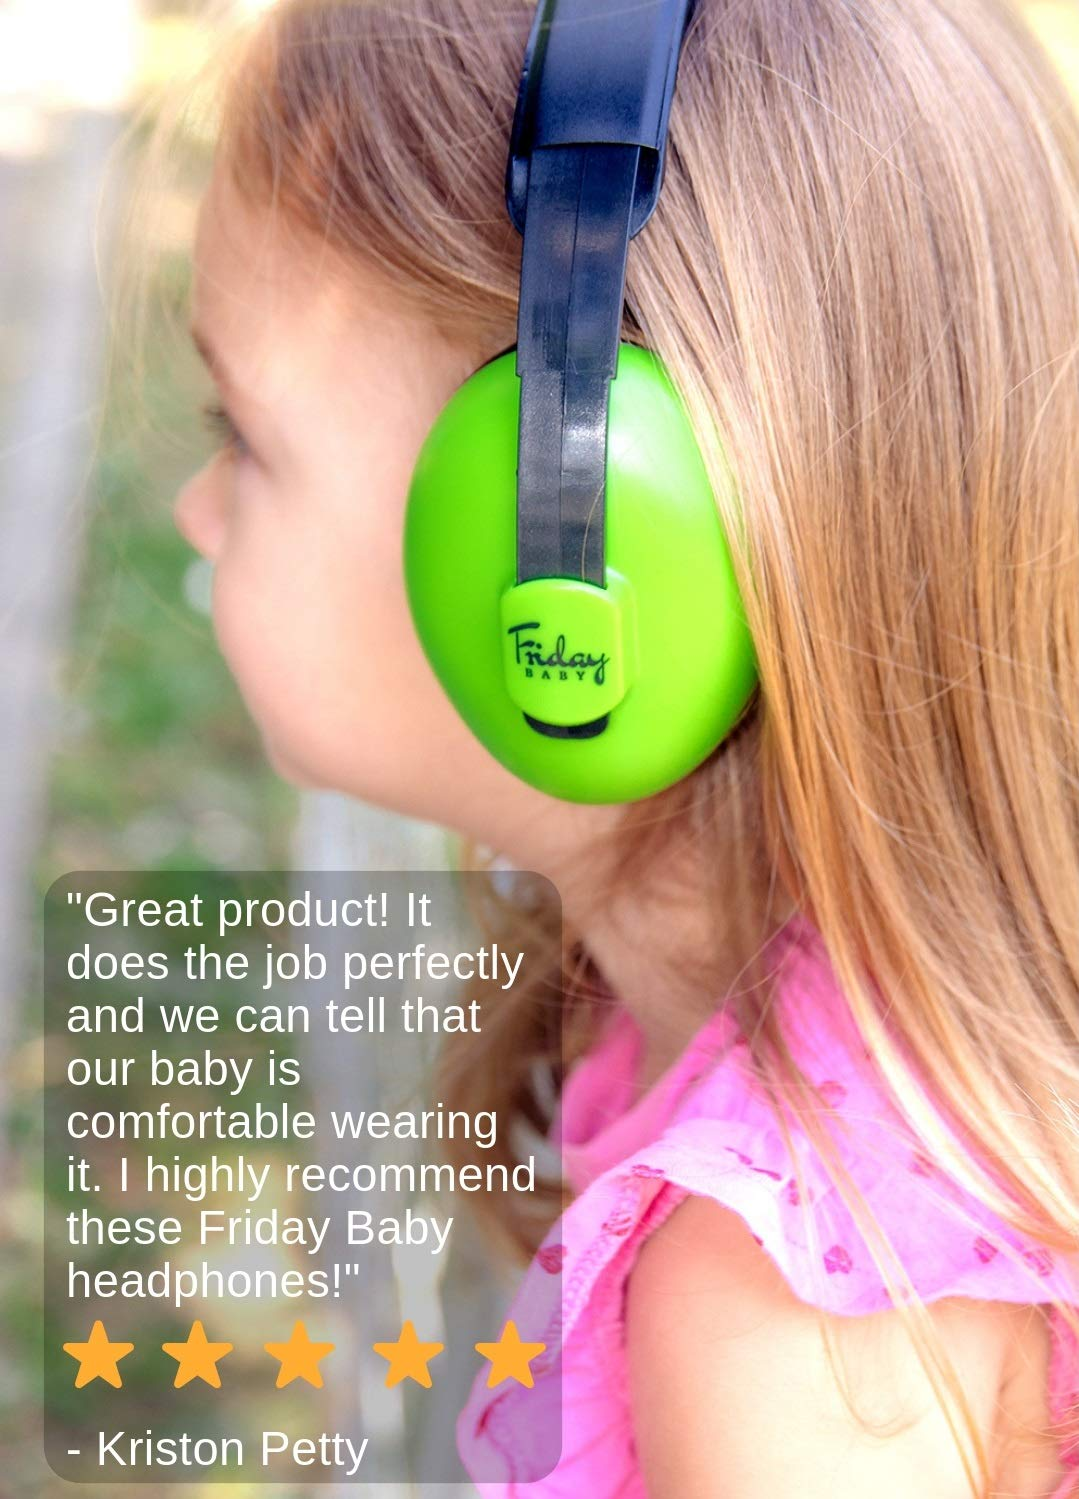 Baby Ear Protection - Comfortable and Adjustable Premium Noise Cancelling Headphones for Babies, Infants, Newborns (0-2+ Years) | Best Baby Headphones Noise Reduction for Concerts, Fireworks & Travels by Friday Baby (Image #5)